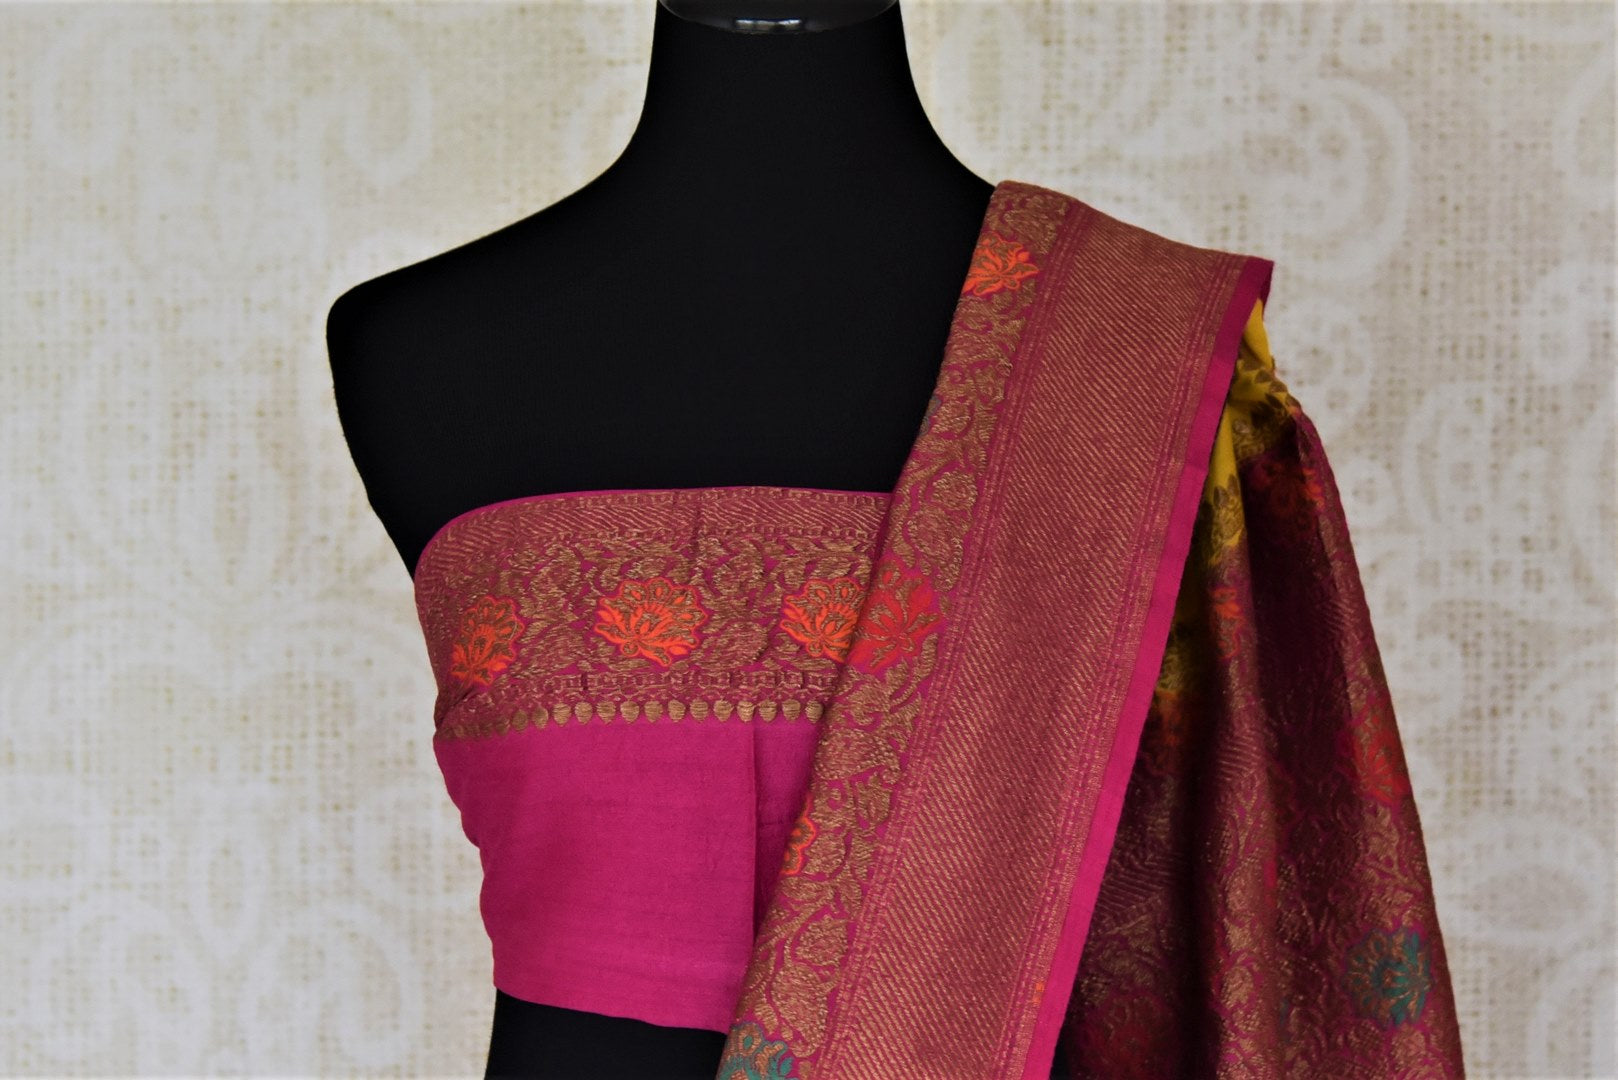 Buy yellow muga Benarasi saree online in USA with pink antique zari floral border. Keep your ethnic style updated with latest designer sarees, handloom sarees, muga silk sarees from Pure Elegance Indian fashion store in USA.-blouse pallu